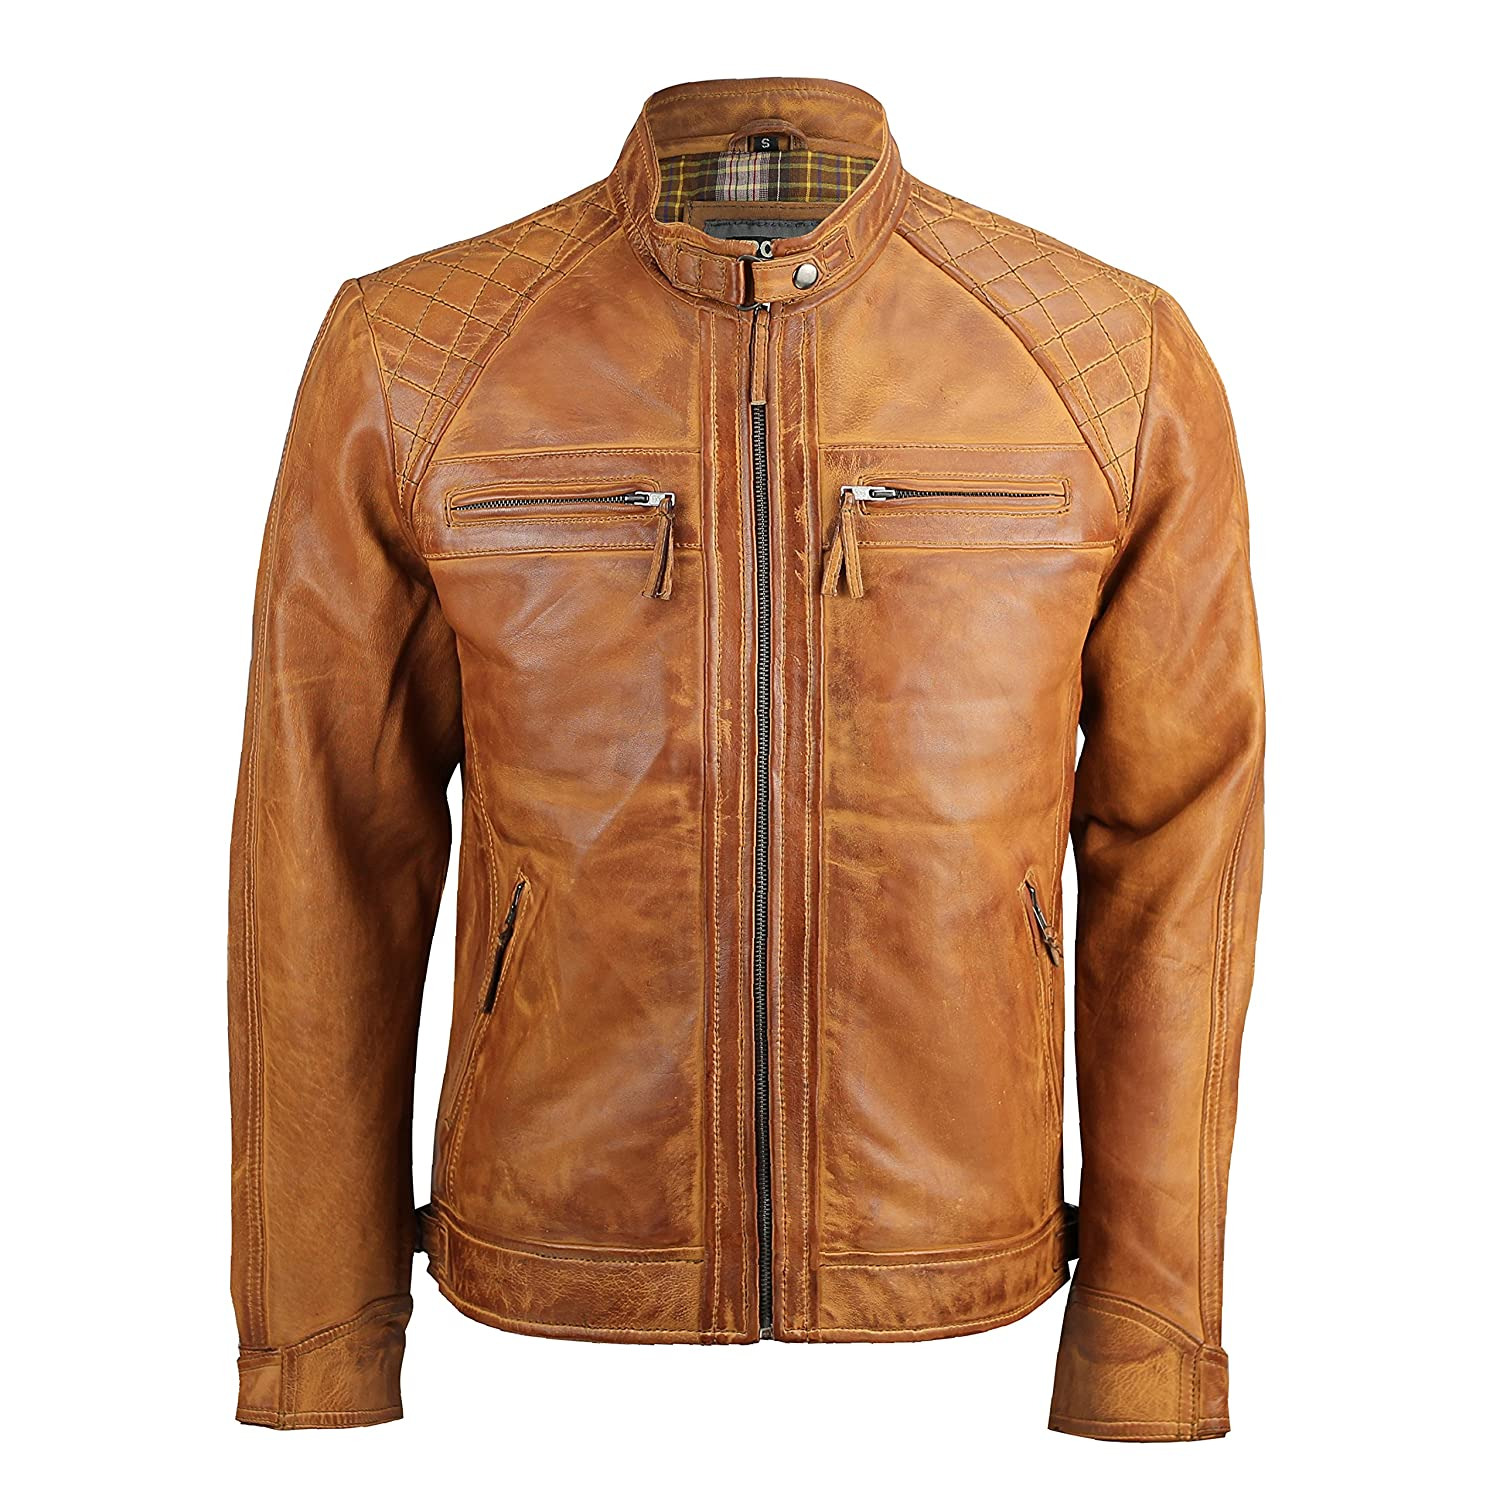 Mens Real Soft Leather Antique Washed Tan Brown Vintage Zipped Smart Casual Biker Jacket